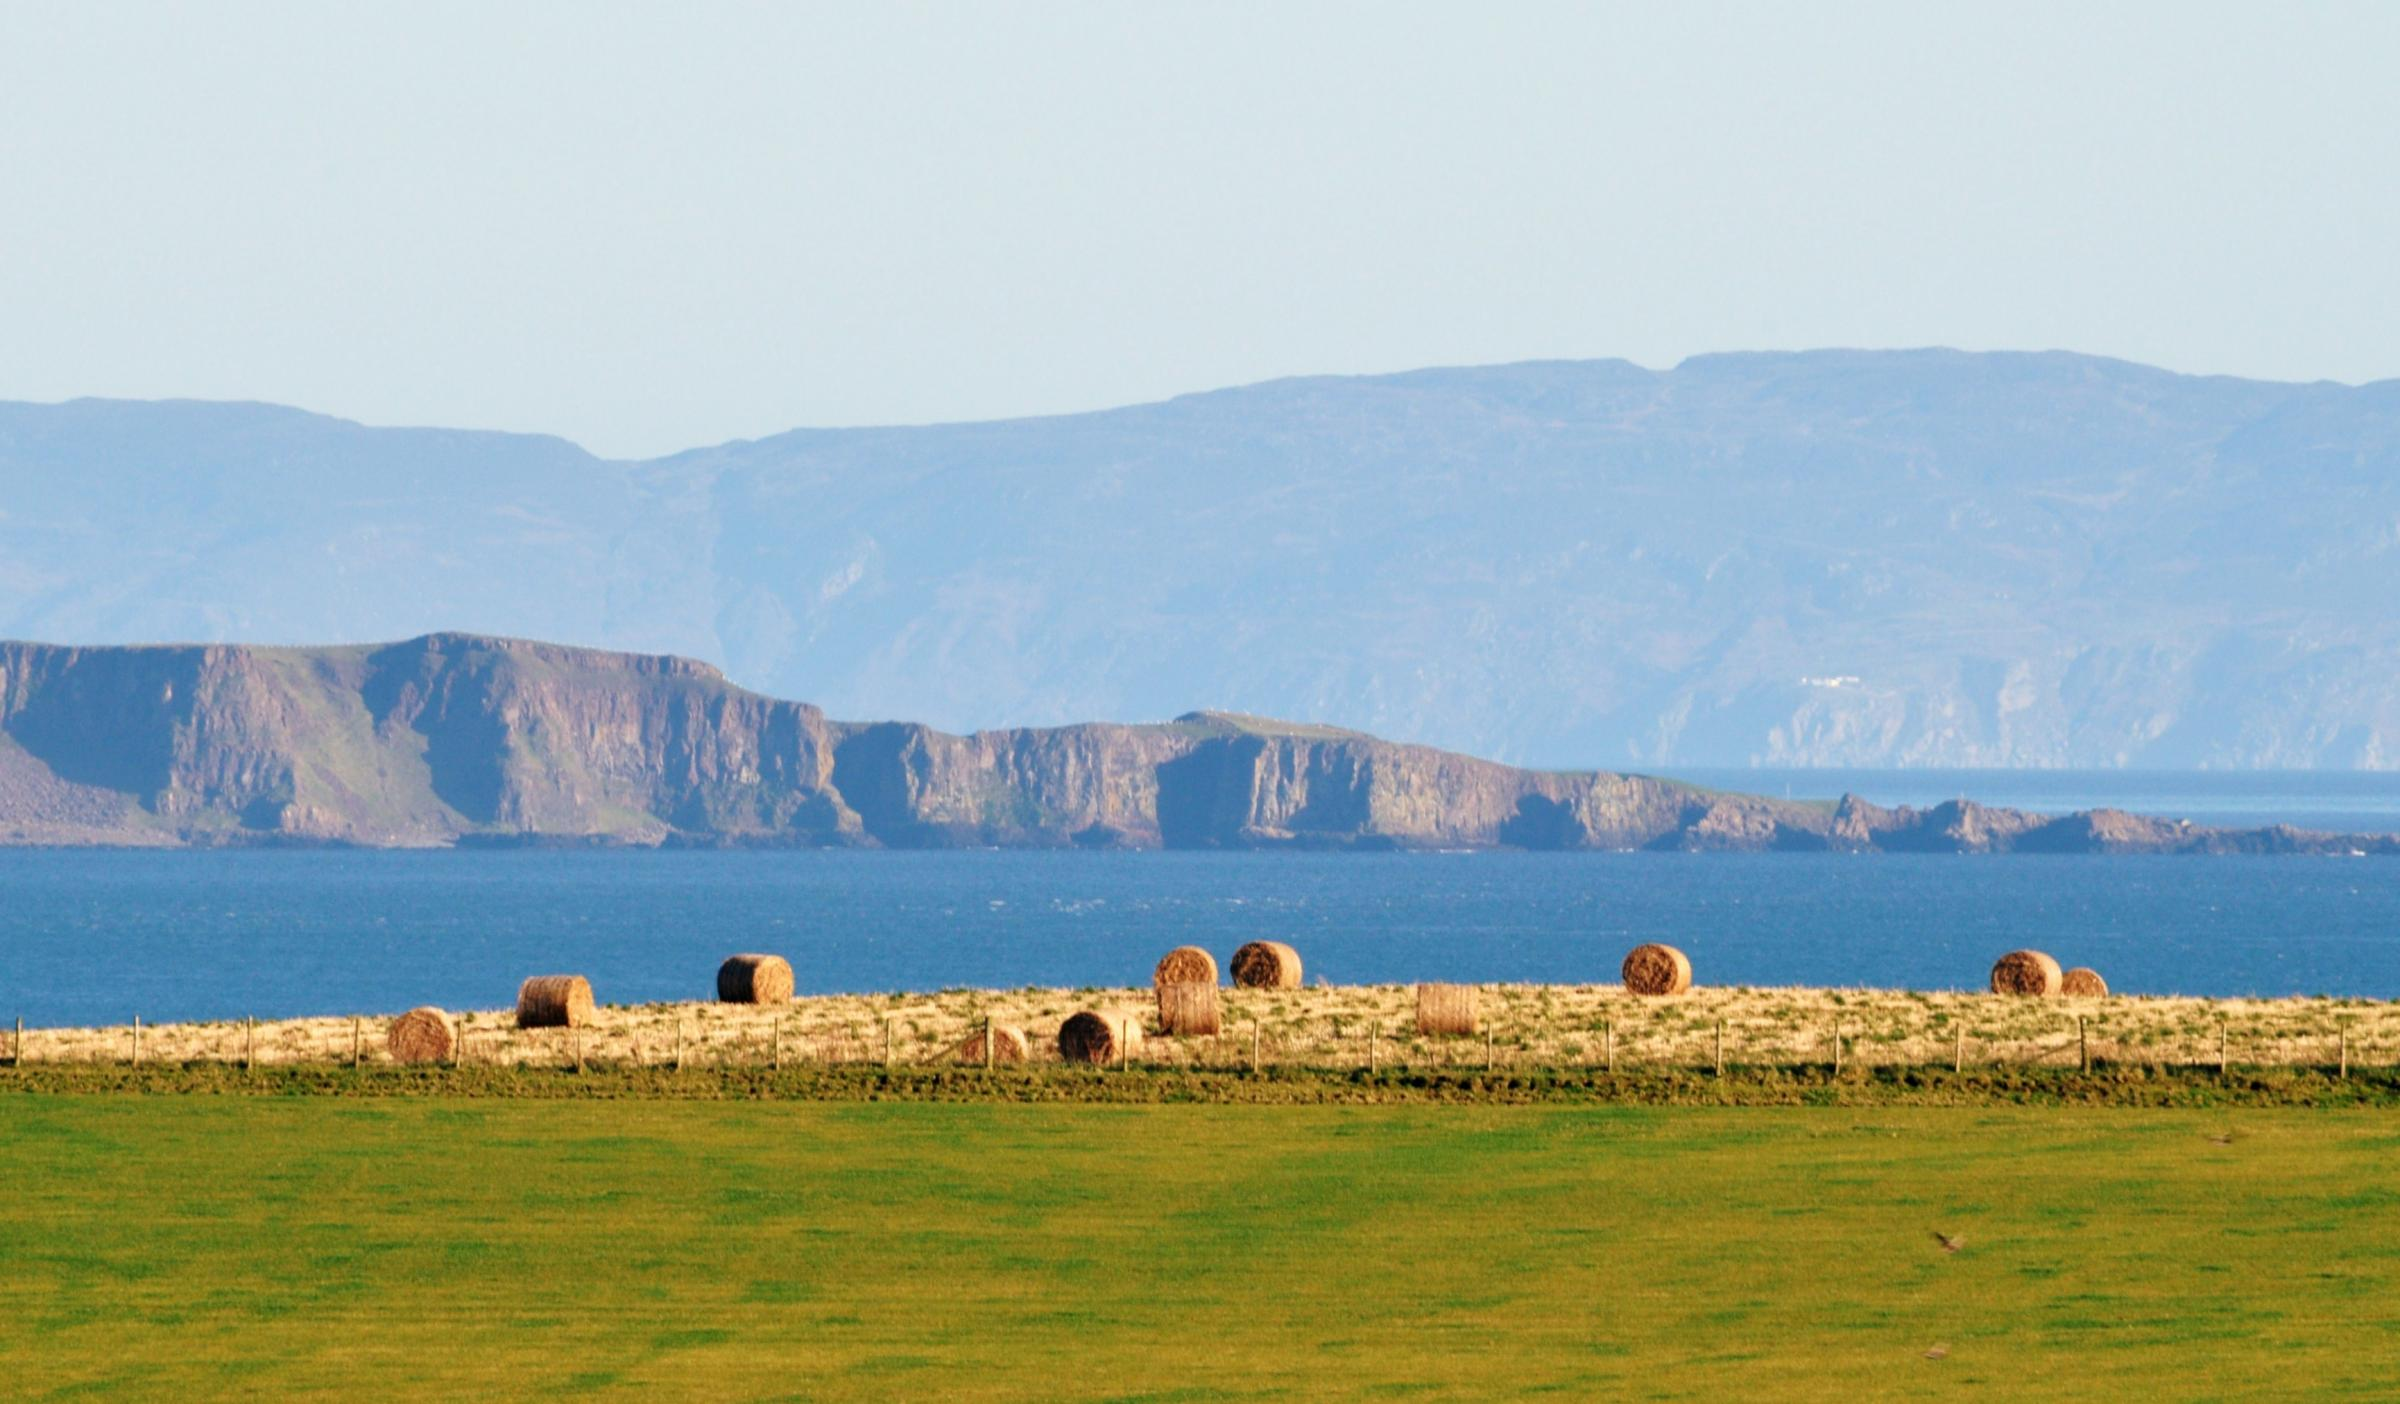 Scottish Panoramas: A Beatle's retreat at the end of the world (or the Mull of Kintyre as it's also known)